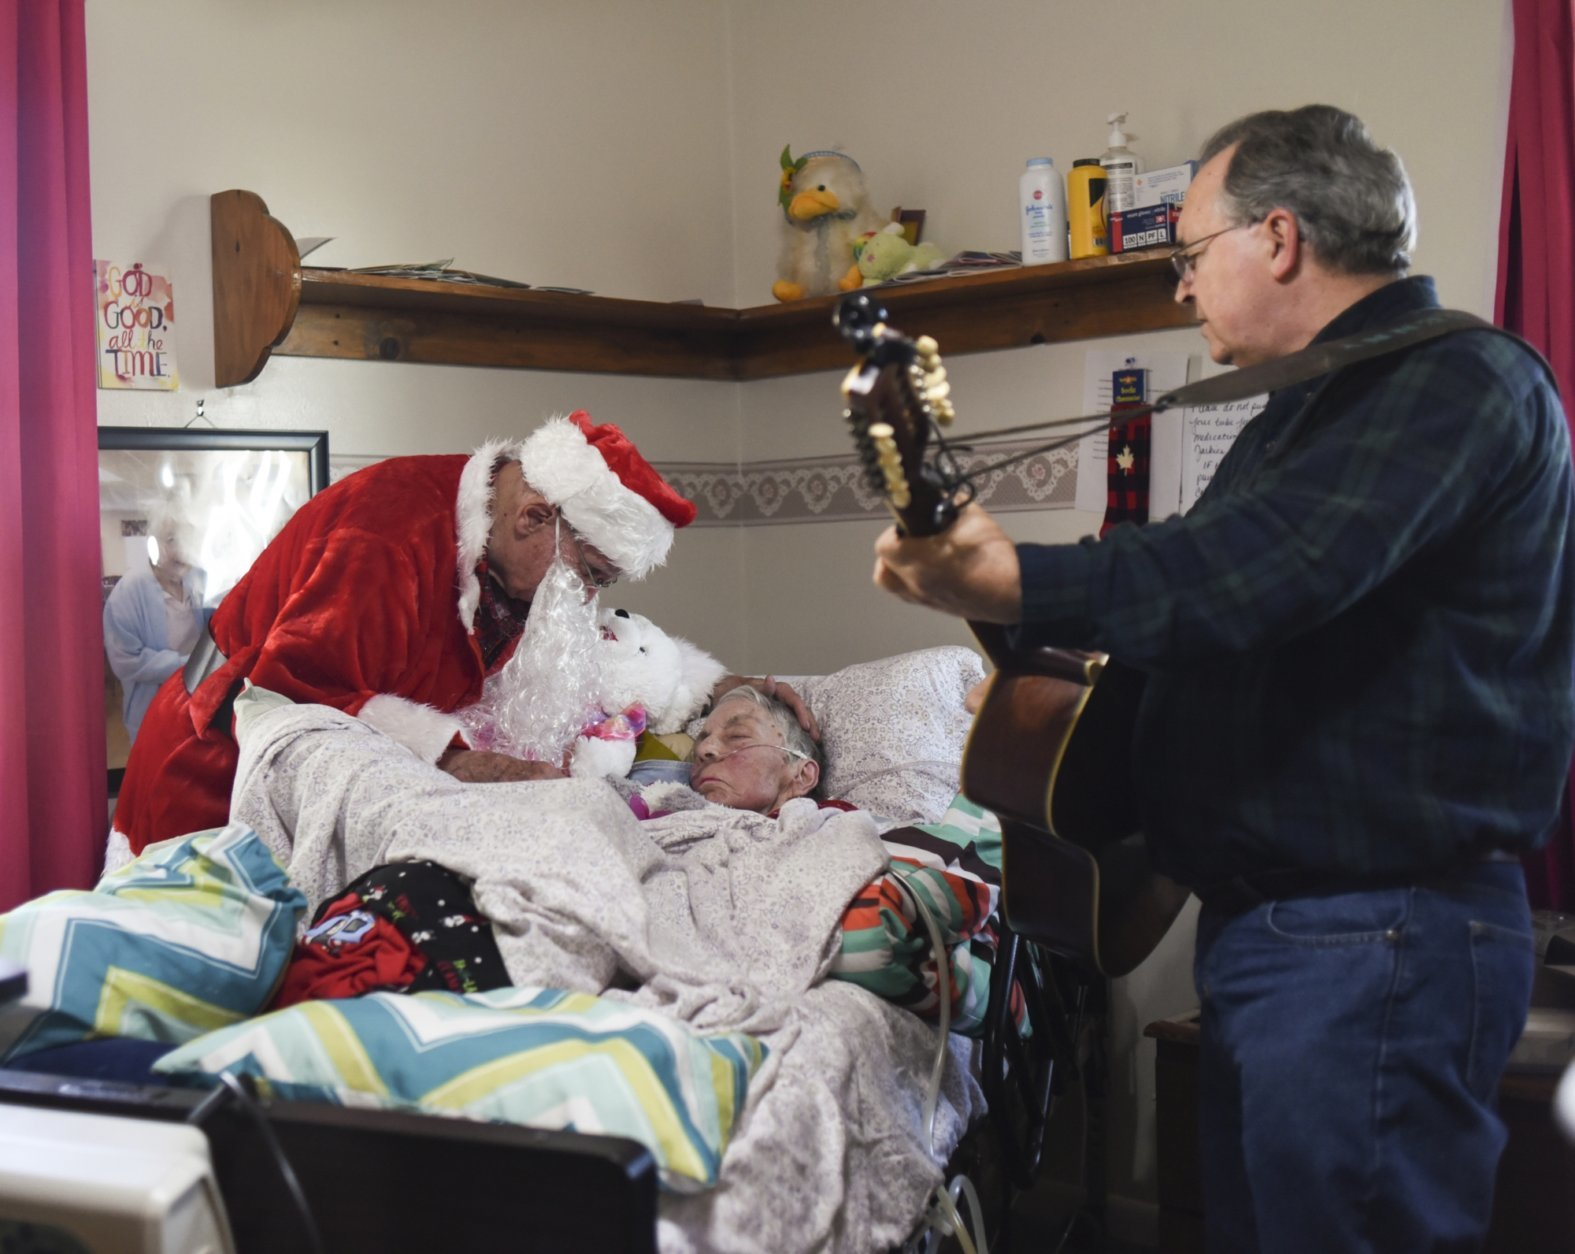 In this Saturday, Dec. 8, 2018 photo, Don West, 90, leans in to kiss his wife Jackie goodnight at Golden Days II Adult Foster Care in Charlotte following a Christmas party for residents and staff at the home. West hired musician Dennis Michaels, right, to play music. (Matthew Dae Smith/Lansing State Journal via AP)